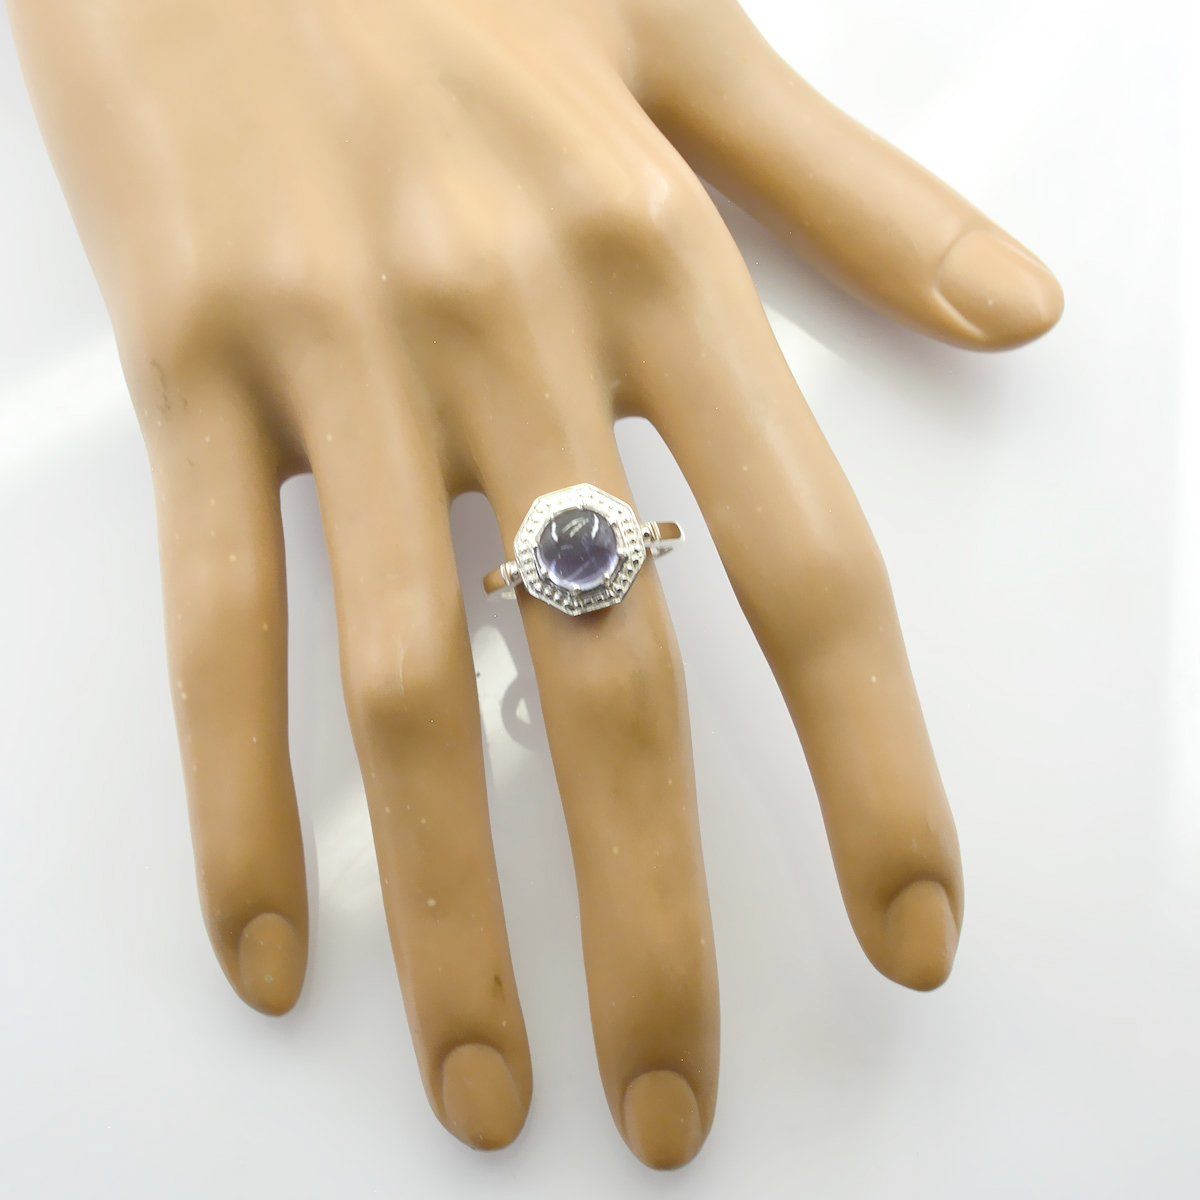 Most Jewellery Gift for Mothers Day top Ring Natural Gemstone Round cabochon Iolite Rings 925 Sterling Silver Blue Iolite Natural Gemstone Ring